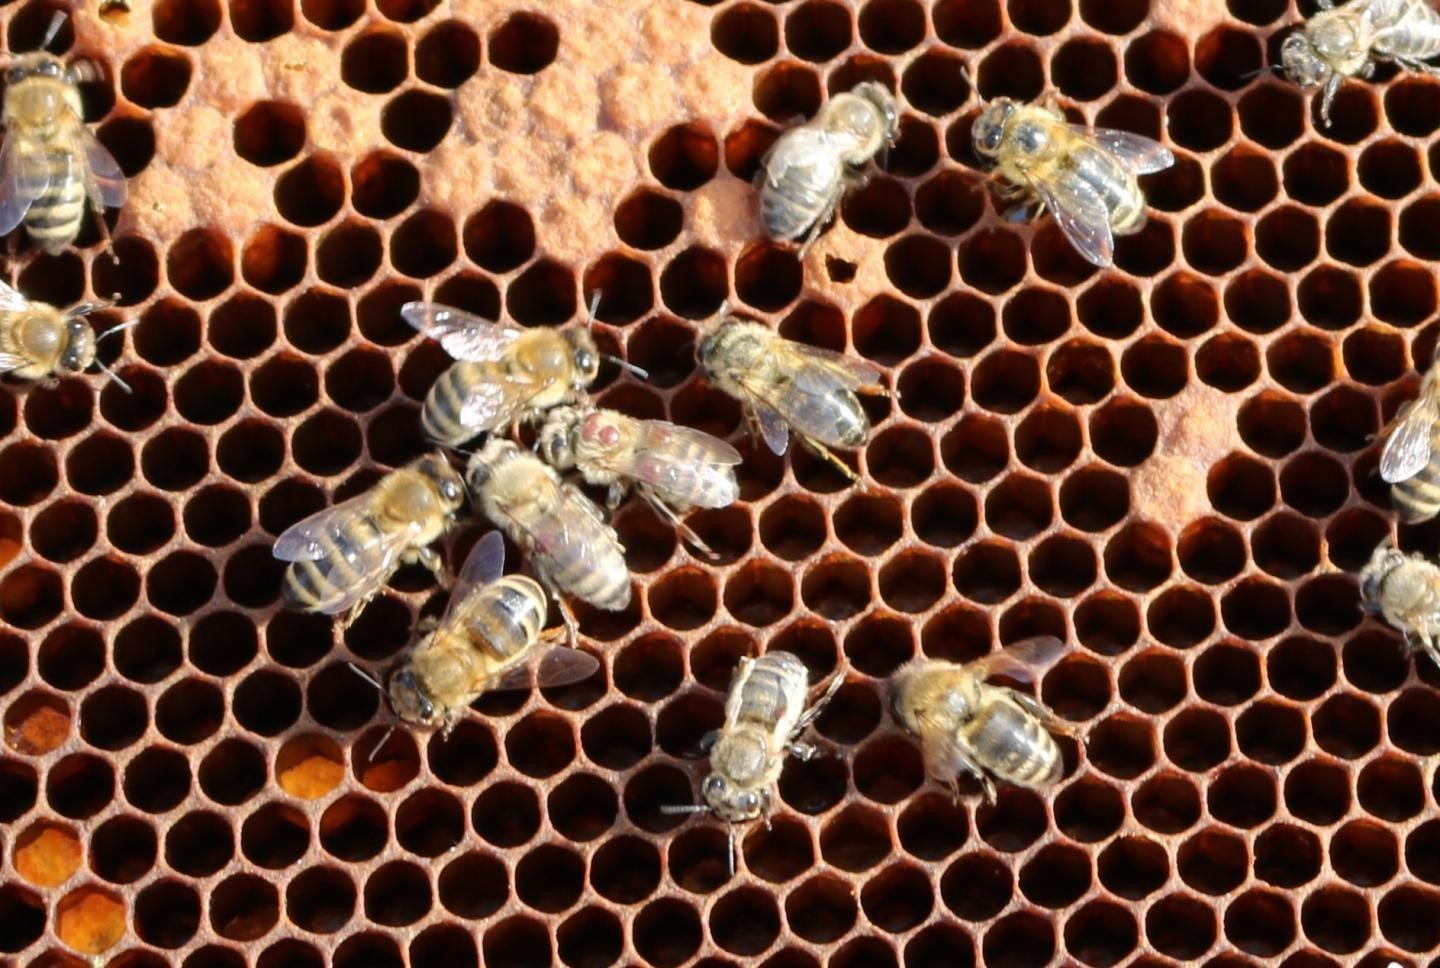 CATCH THE BUZZ – New findings about the honey bee's deformed wing virus